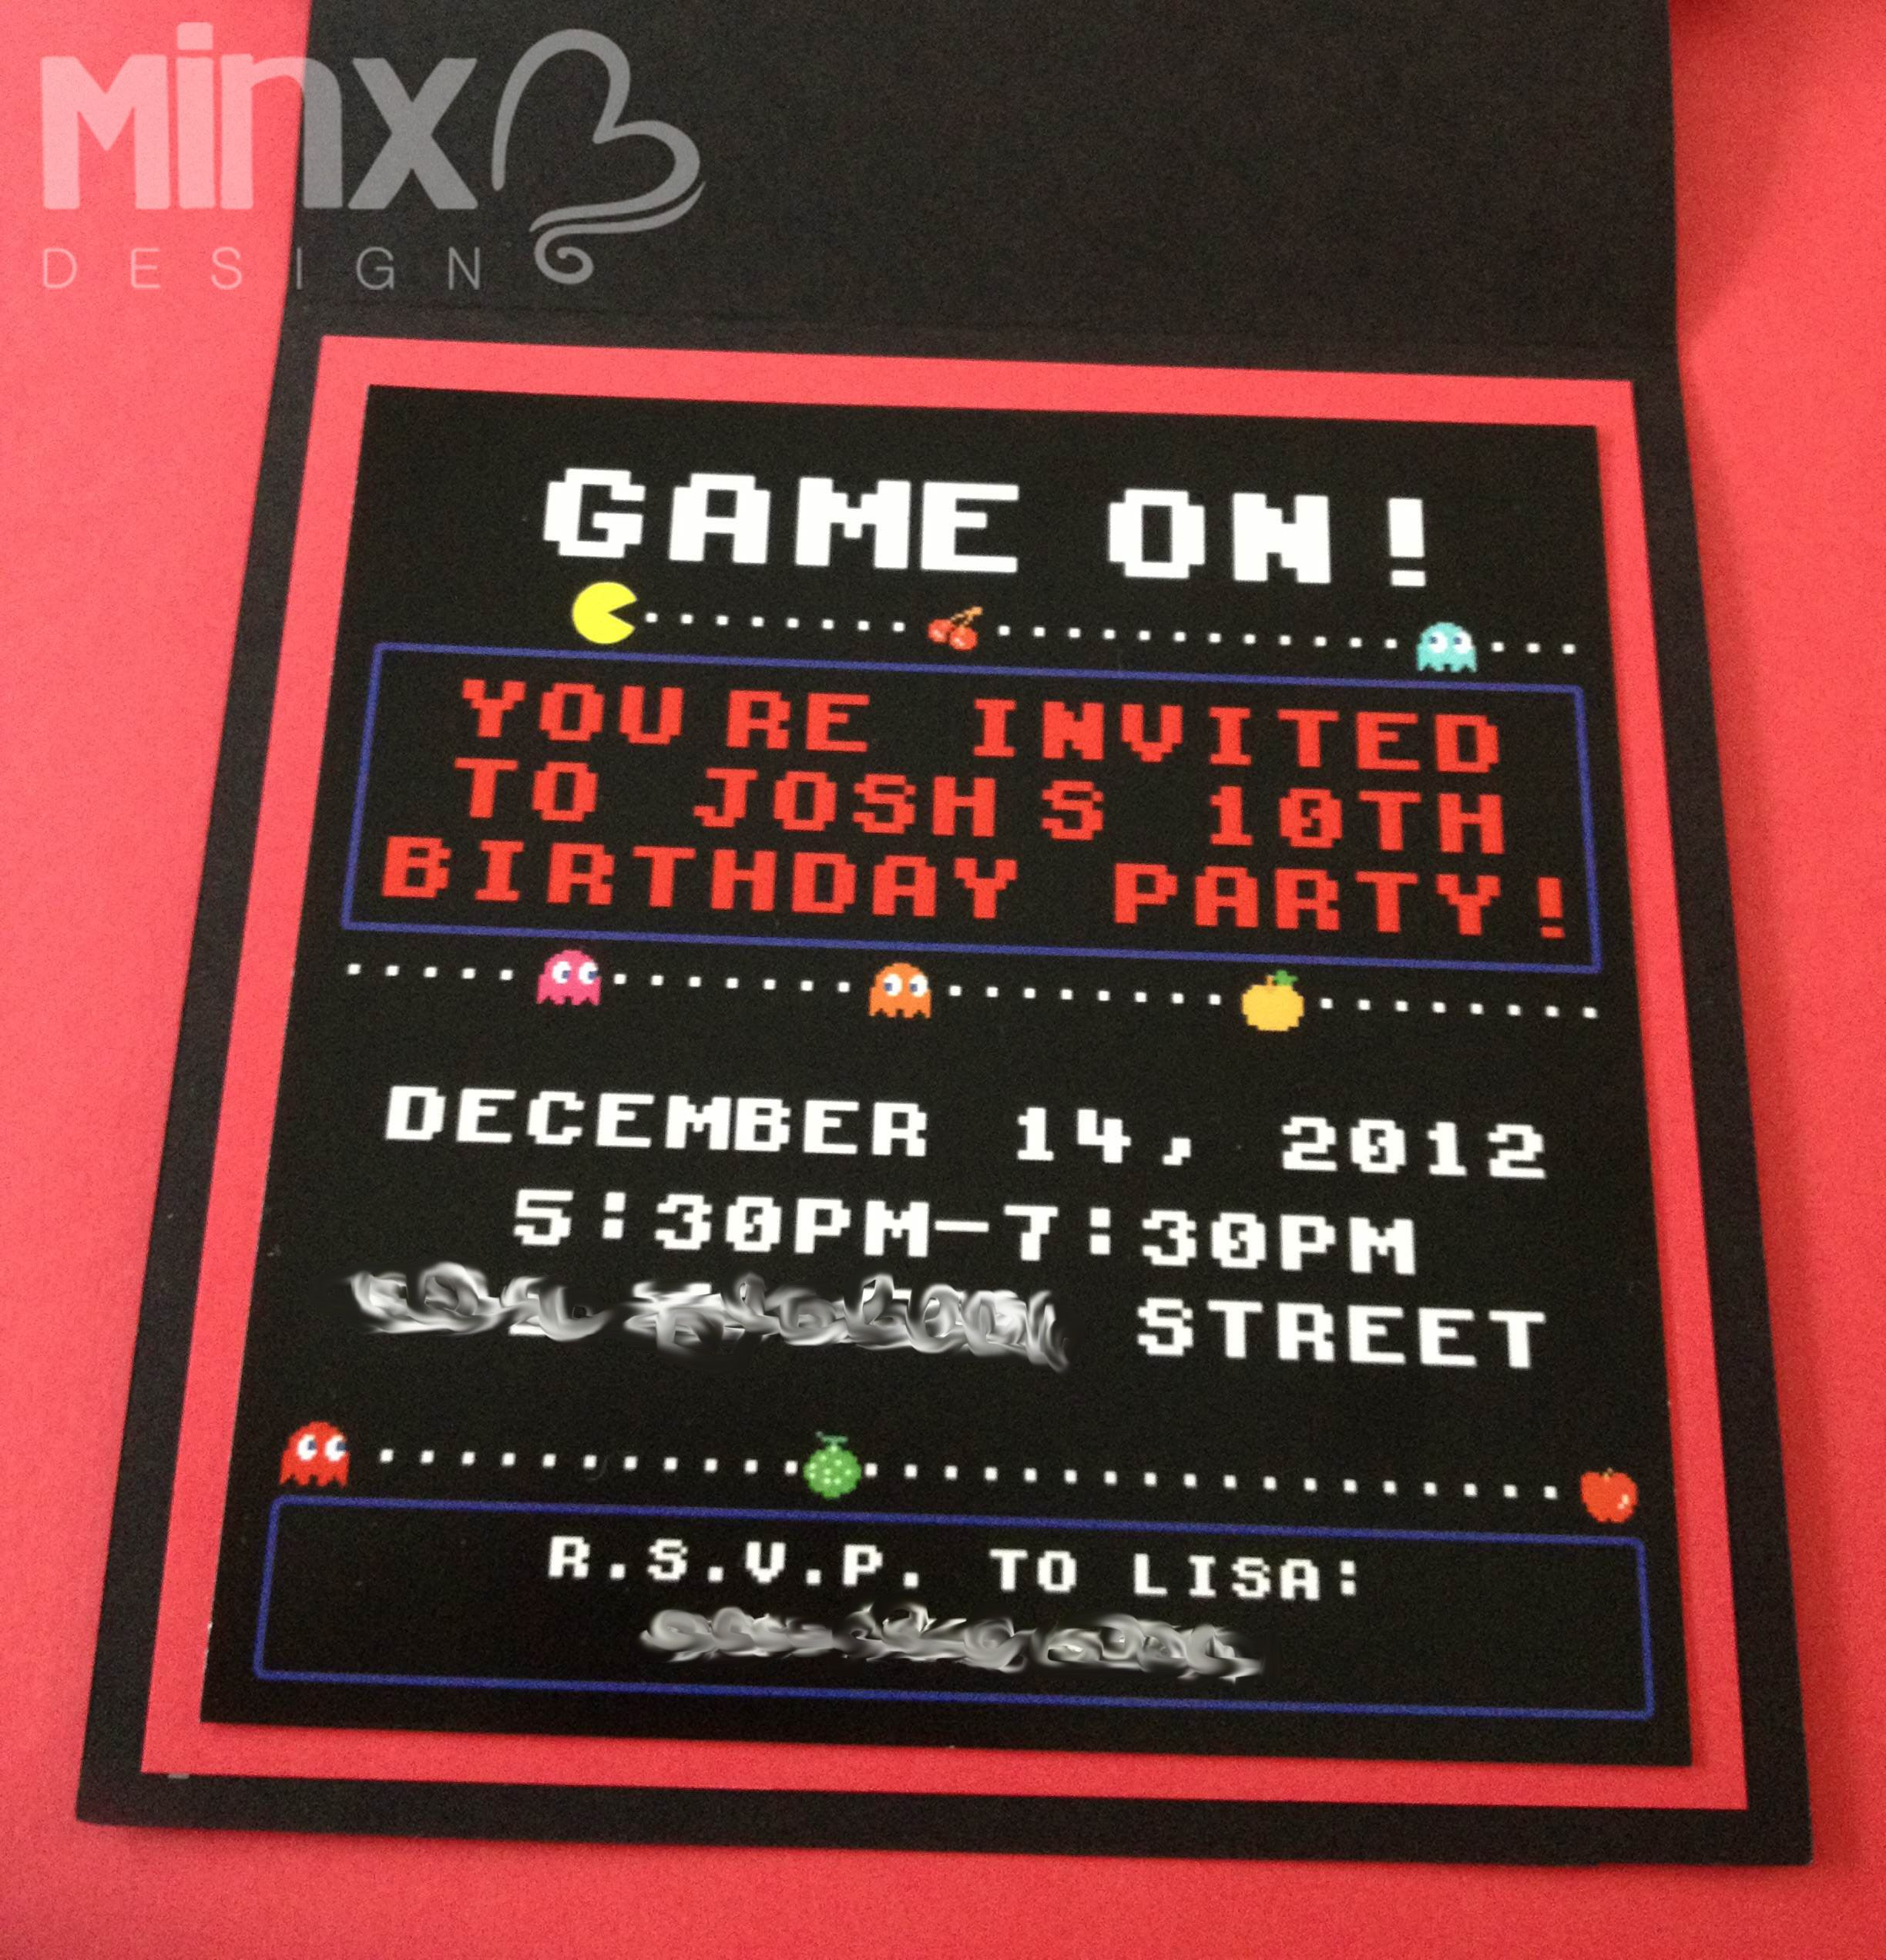 Retro Gamer Card PacMan Style I Used Custom Graphics And A - Birthday invitation video